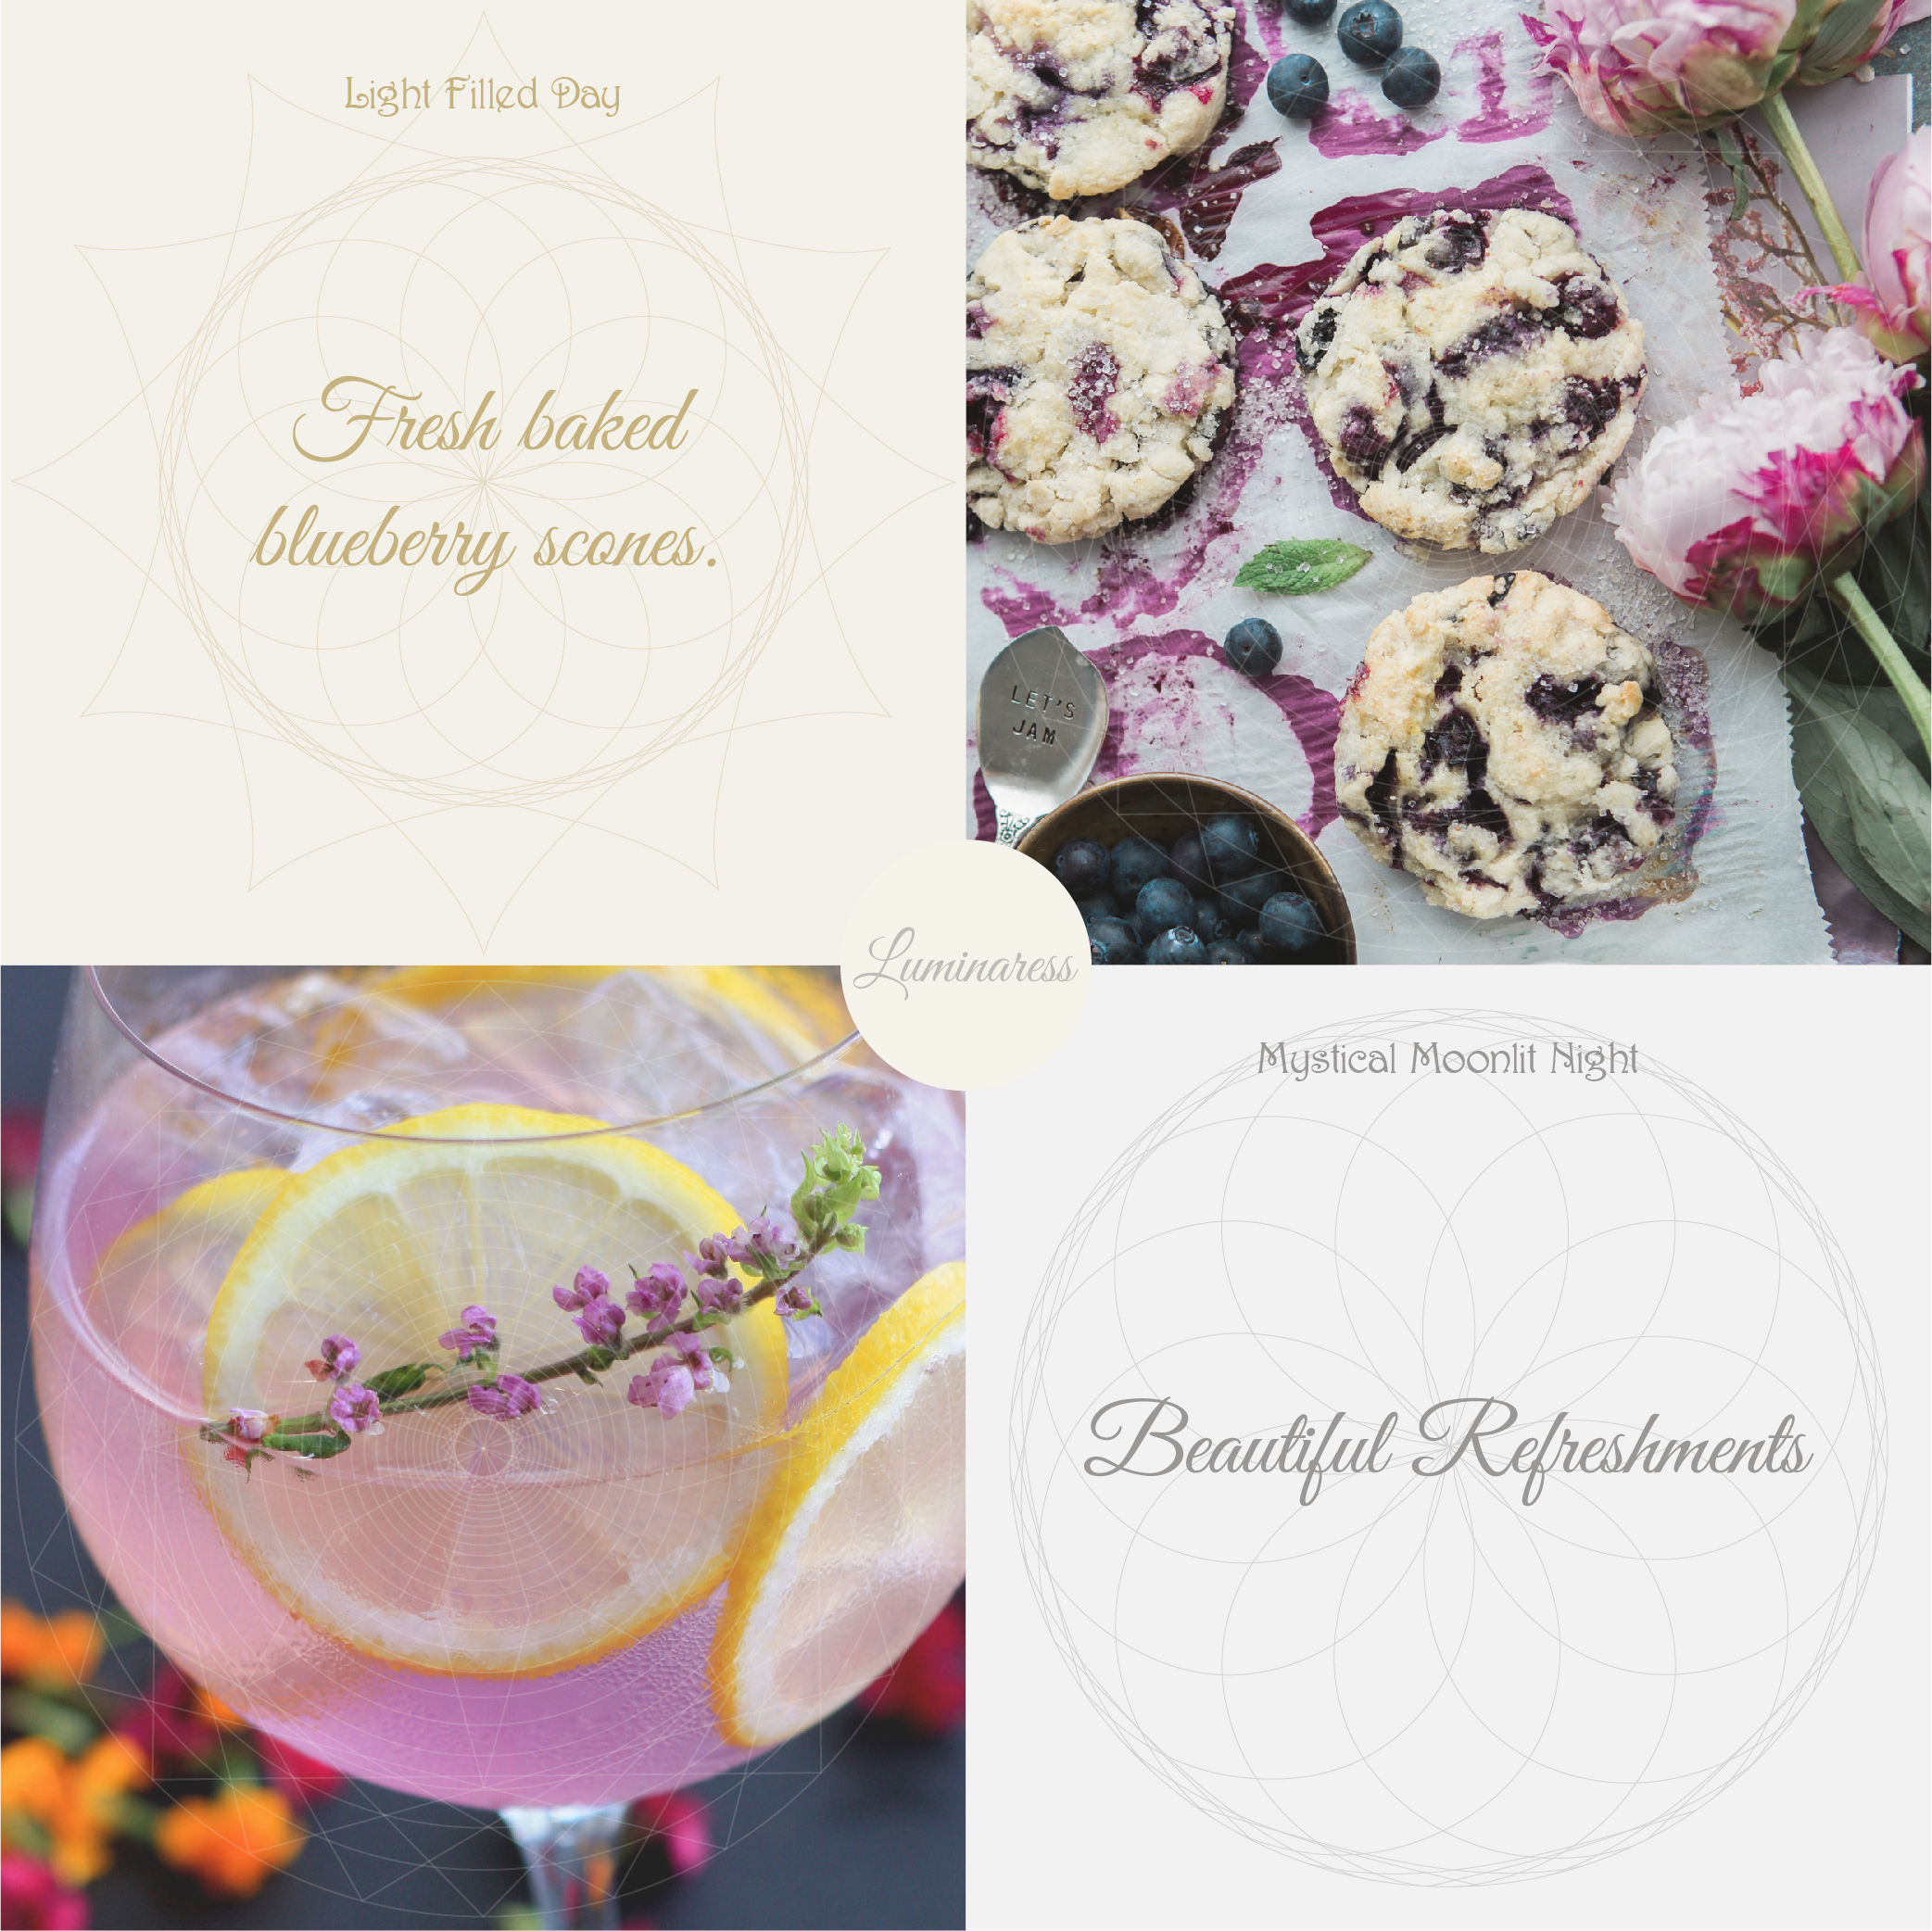 Light Filled Day :  Fresh baked blueberry scones.   Mystical Moonlit Night:   Beautiful Refreshments